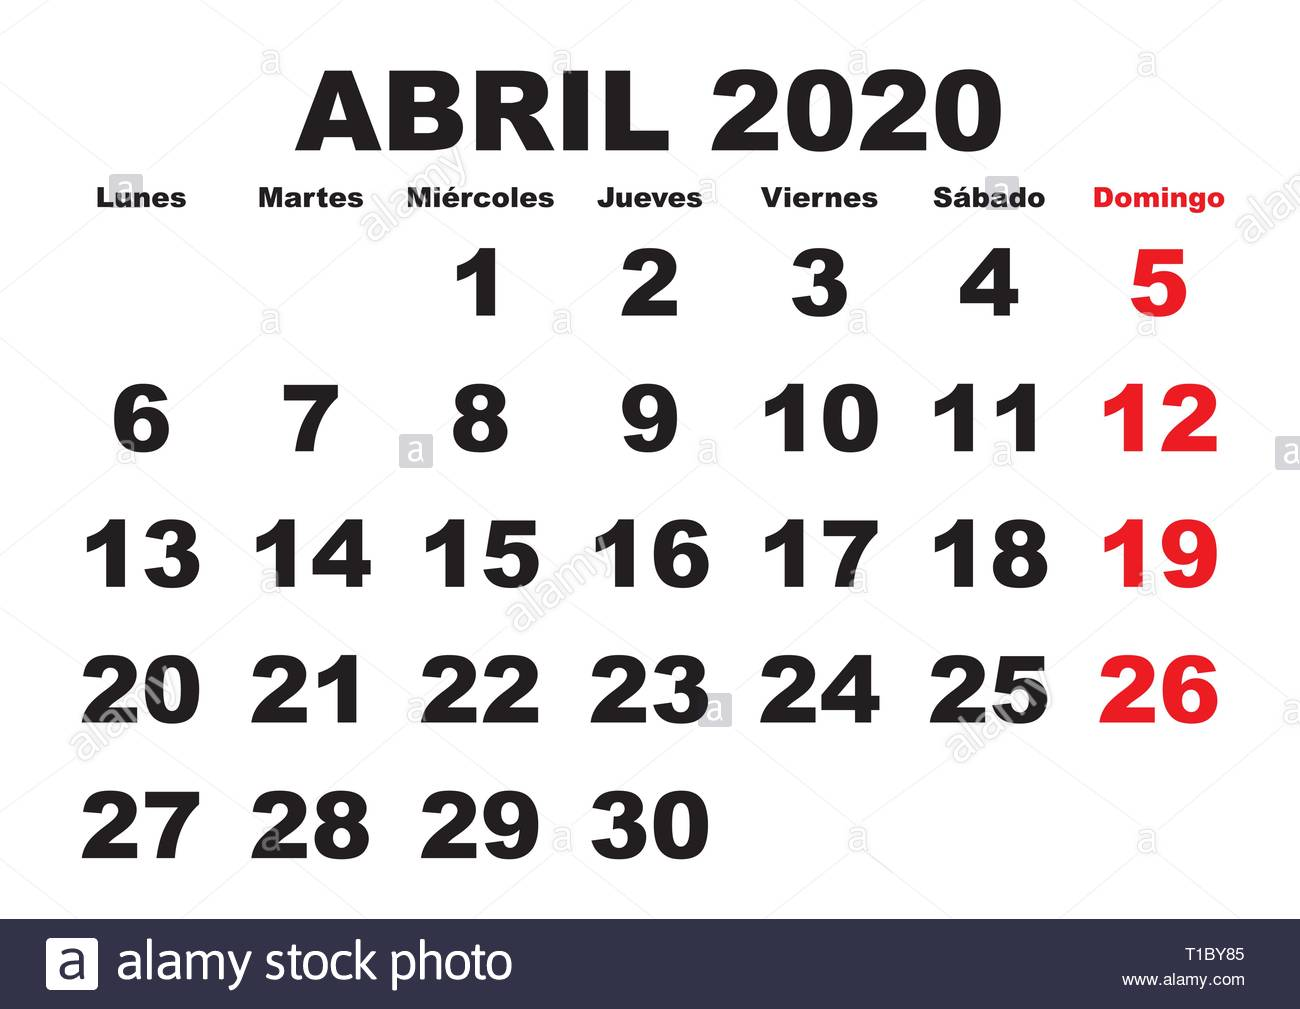 Calendario 2020 Abril.April Month In A Year 2020 Wall Calendar In Spanish Abril 2020